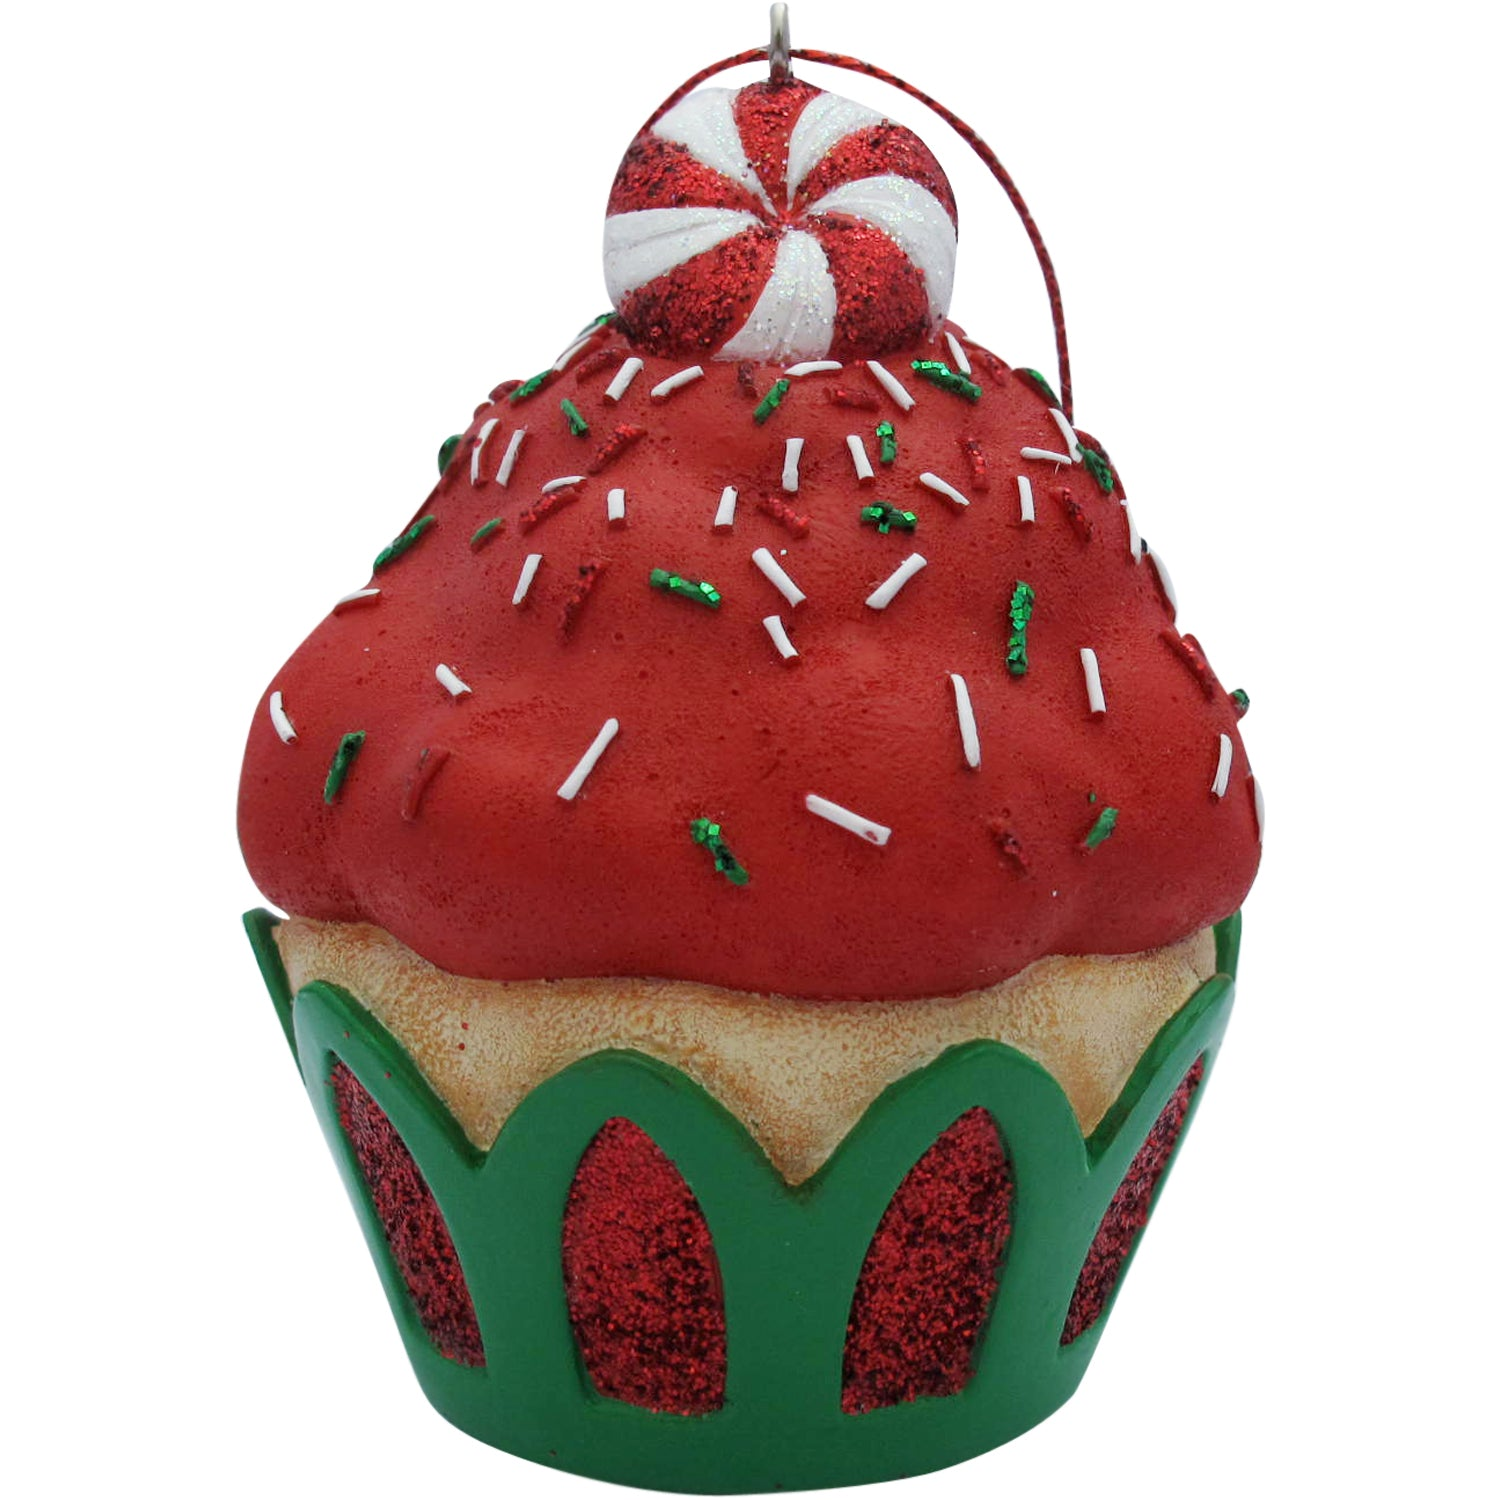 Red Peppermint Top Cupcake Christmas Tree Ornament